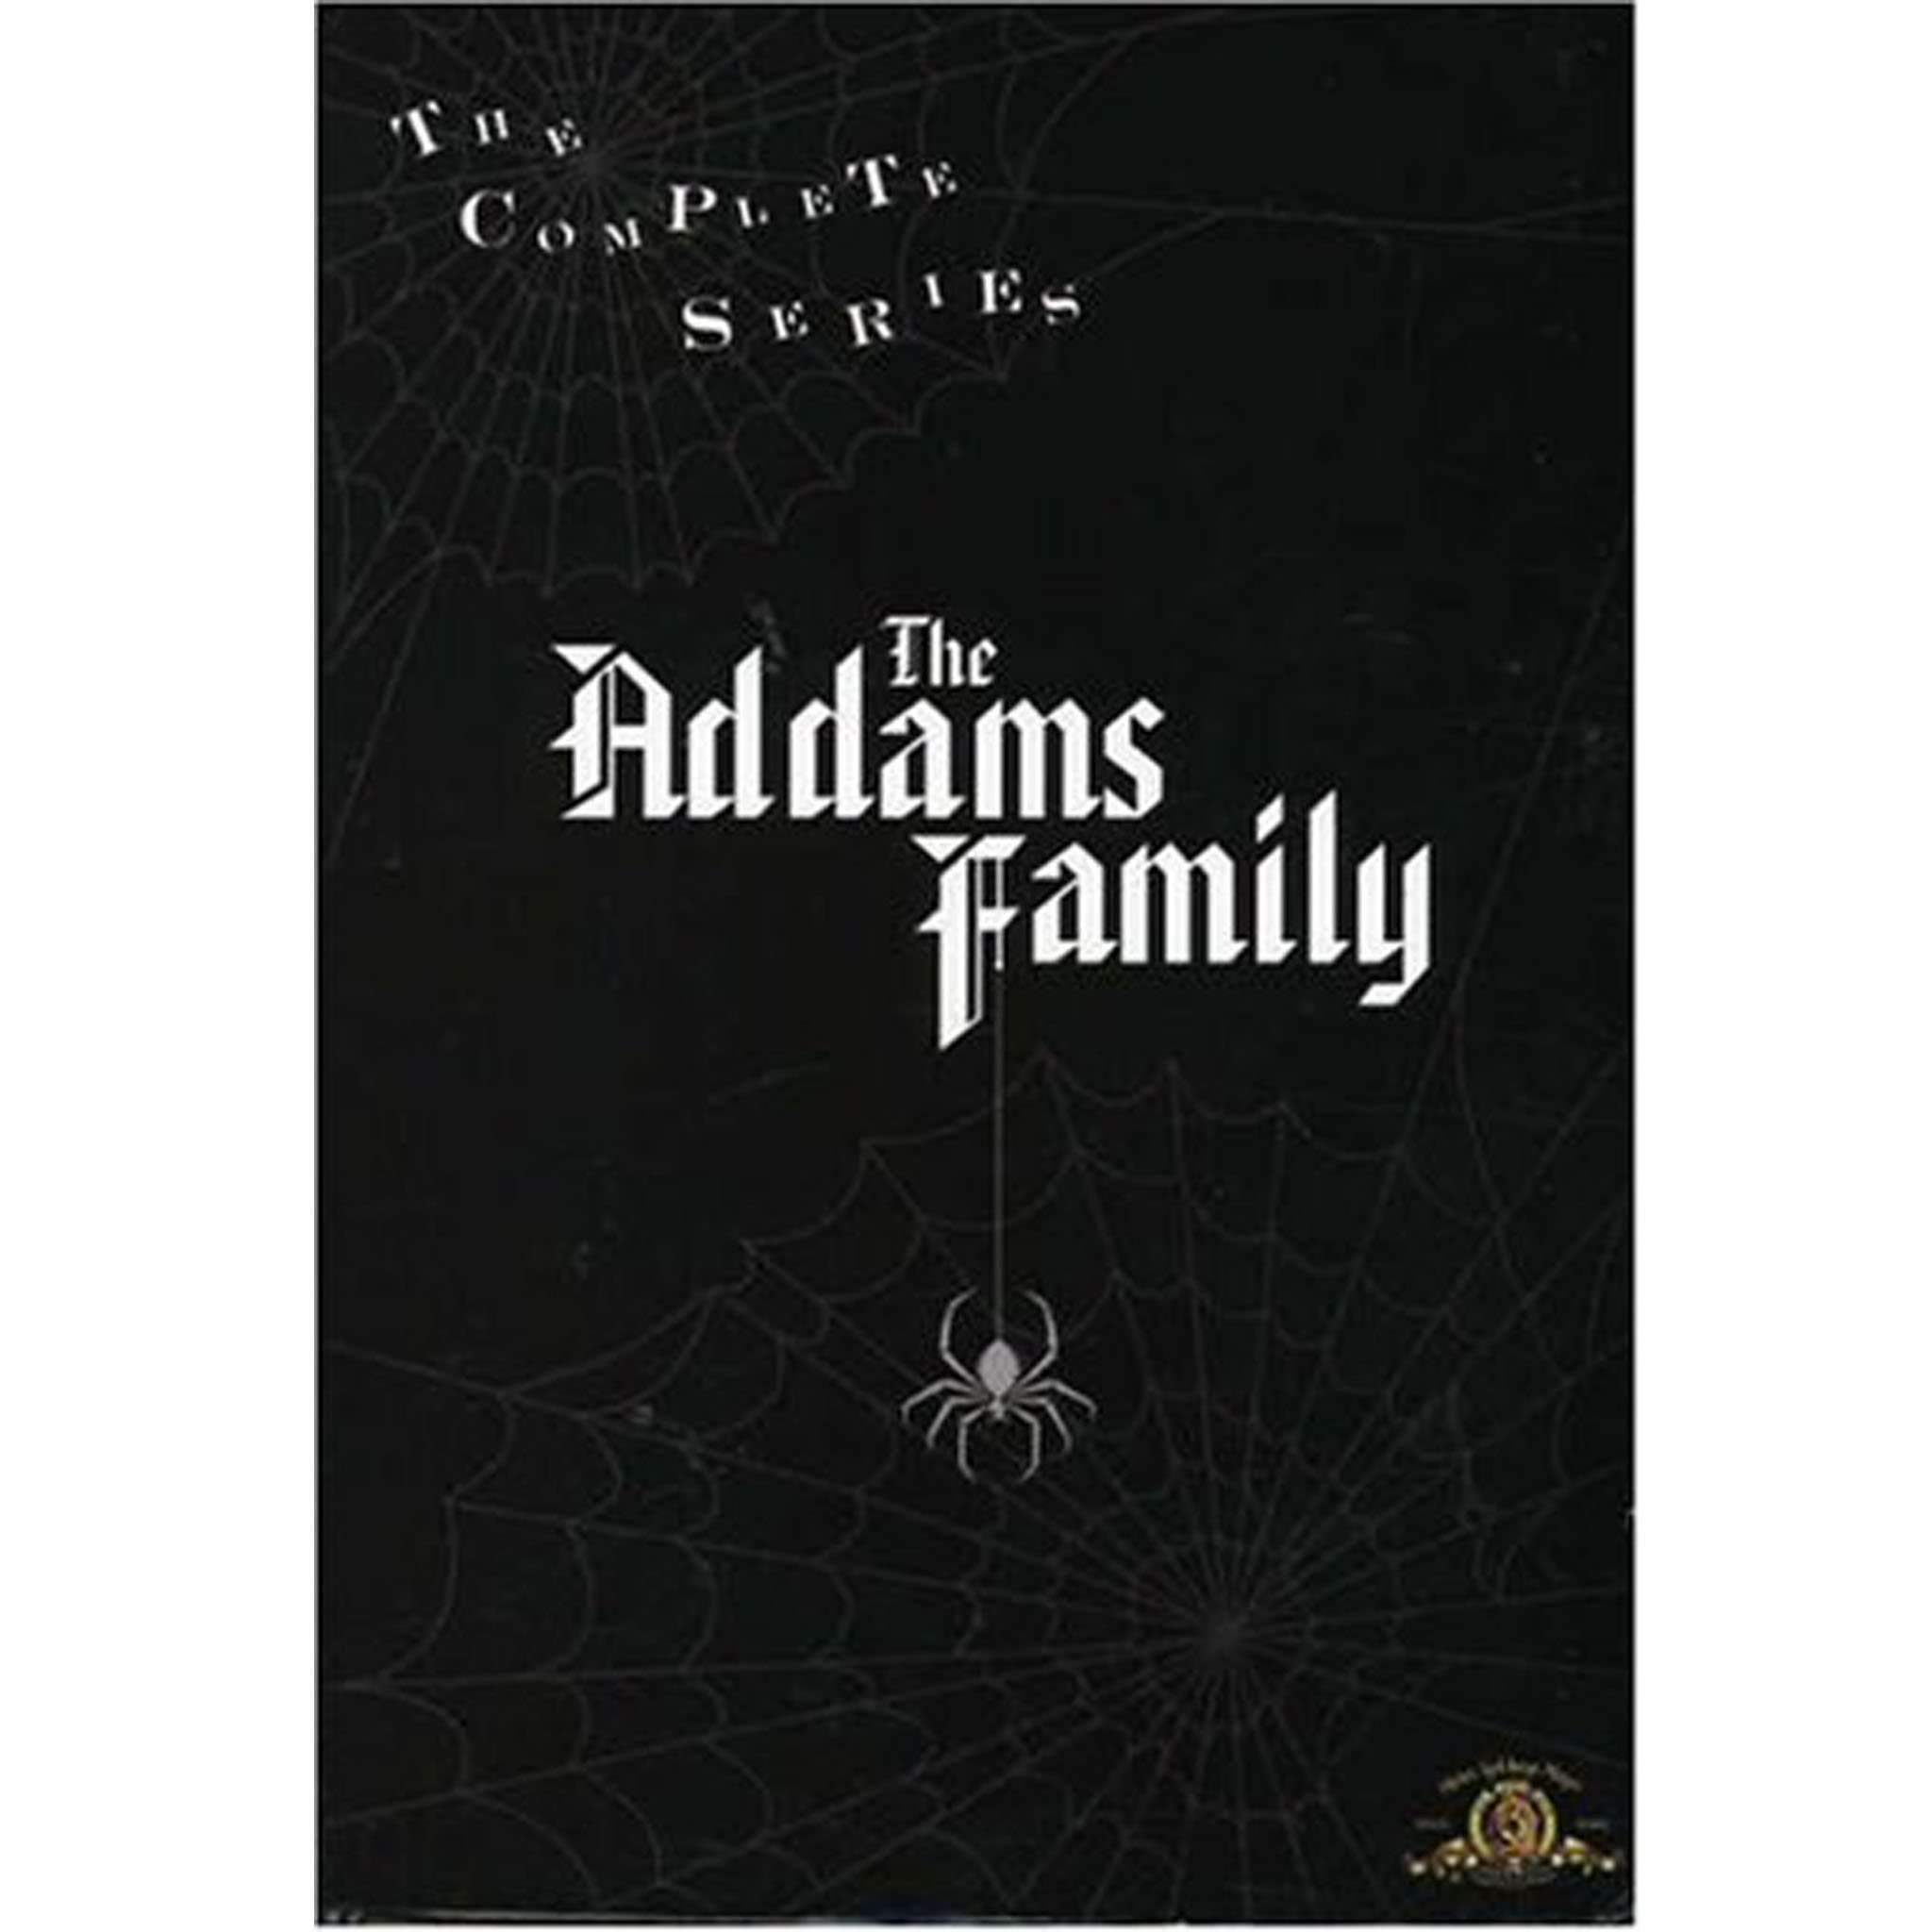 The Addams Family DVD Complete Series Box Set MGM DVDs & Blu-ray Discs > DVDs > Box Sets